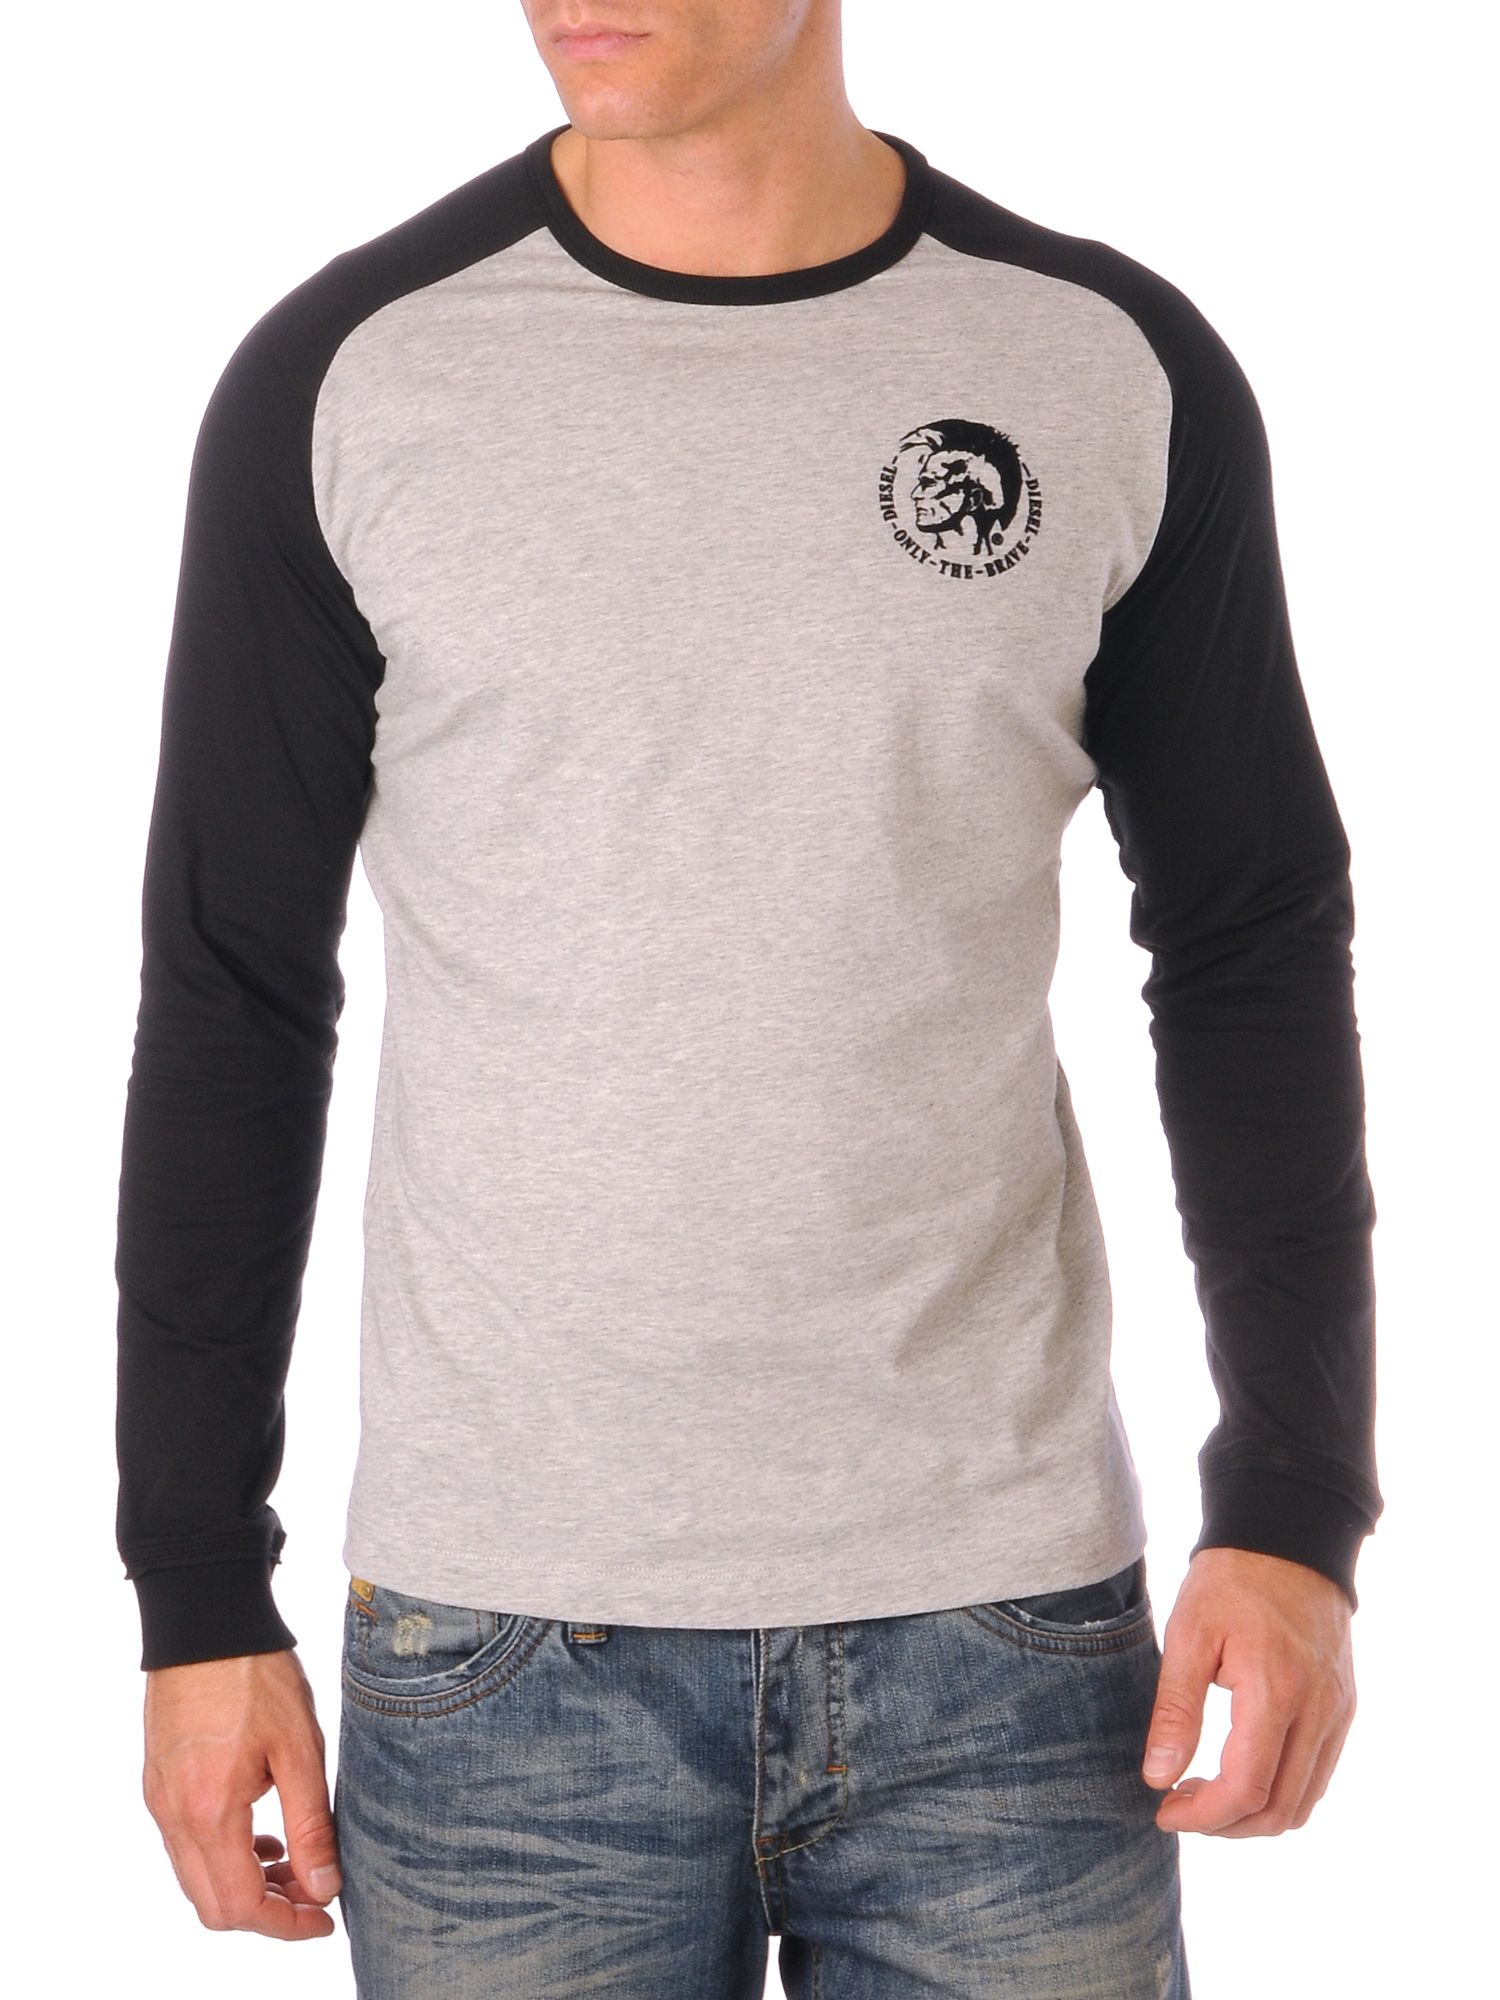 Diesel T-shirt Long sleeve Raglan product image